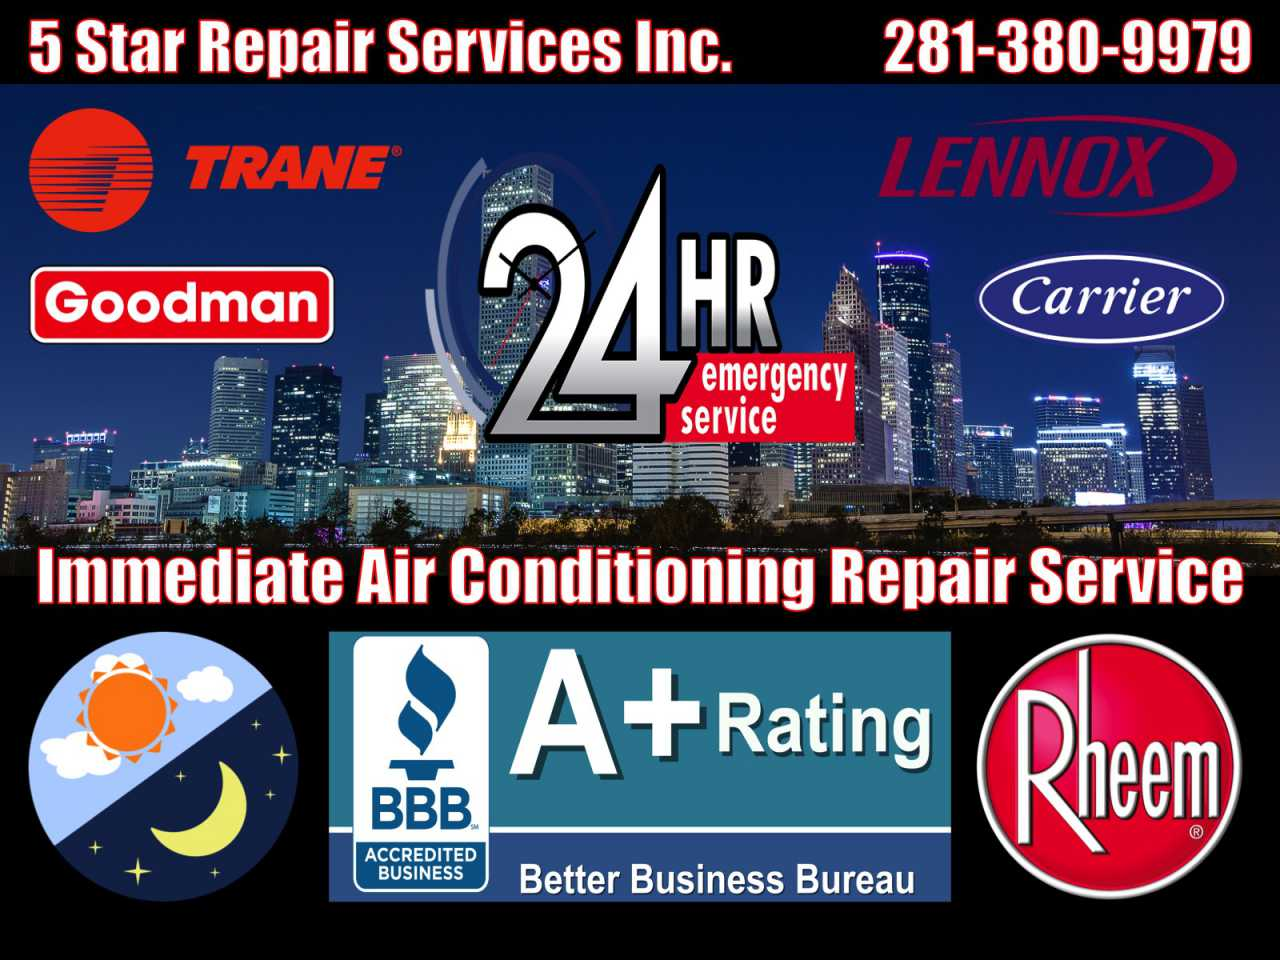 24 Hour Emergency Air Conditioning AC HVAC Furnace Condition Repair Service Atascocita 77396 77346 77338 77044 Central Cooling Unit System Duct Cleaning Maintenance